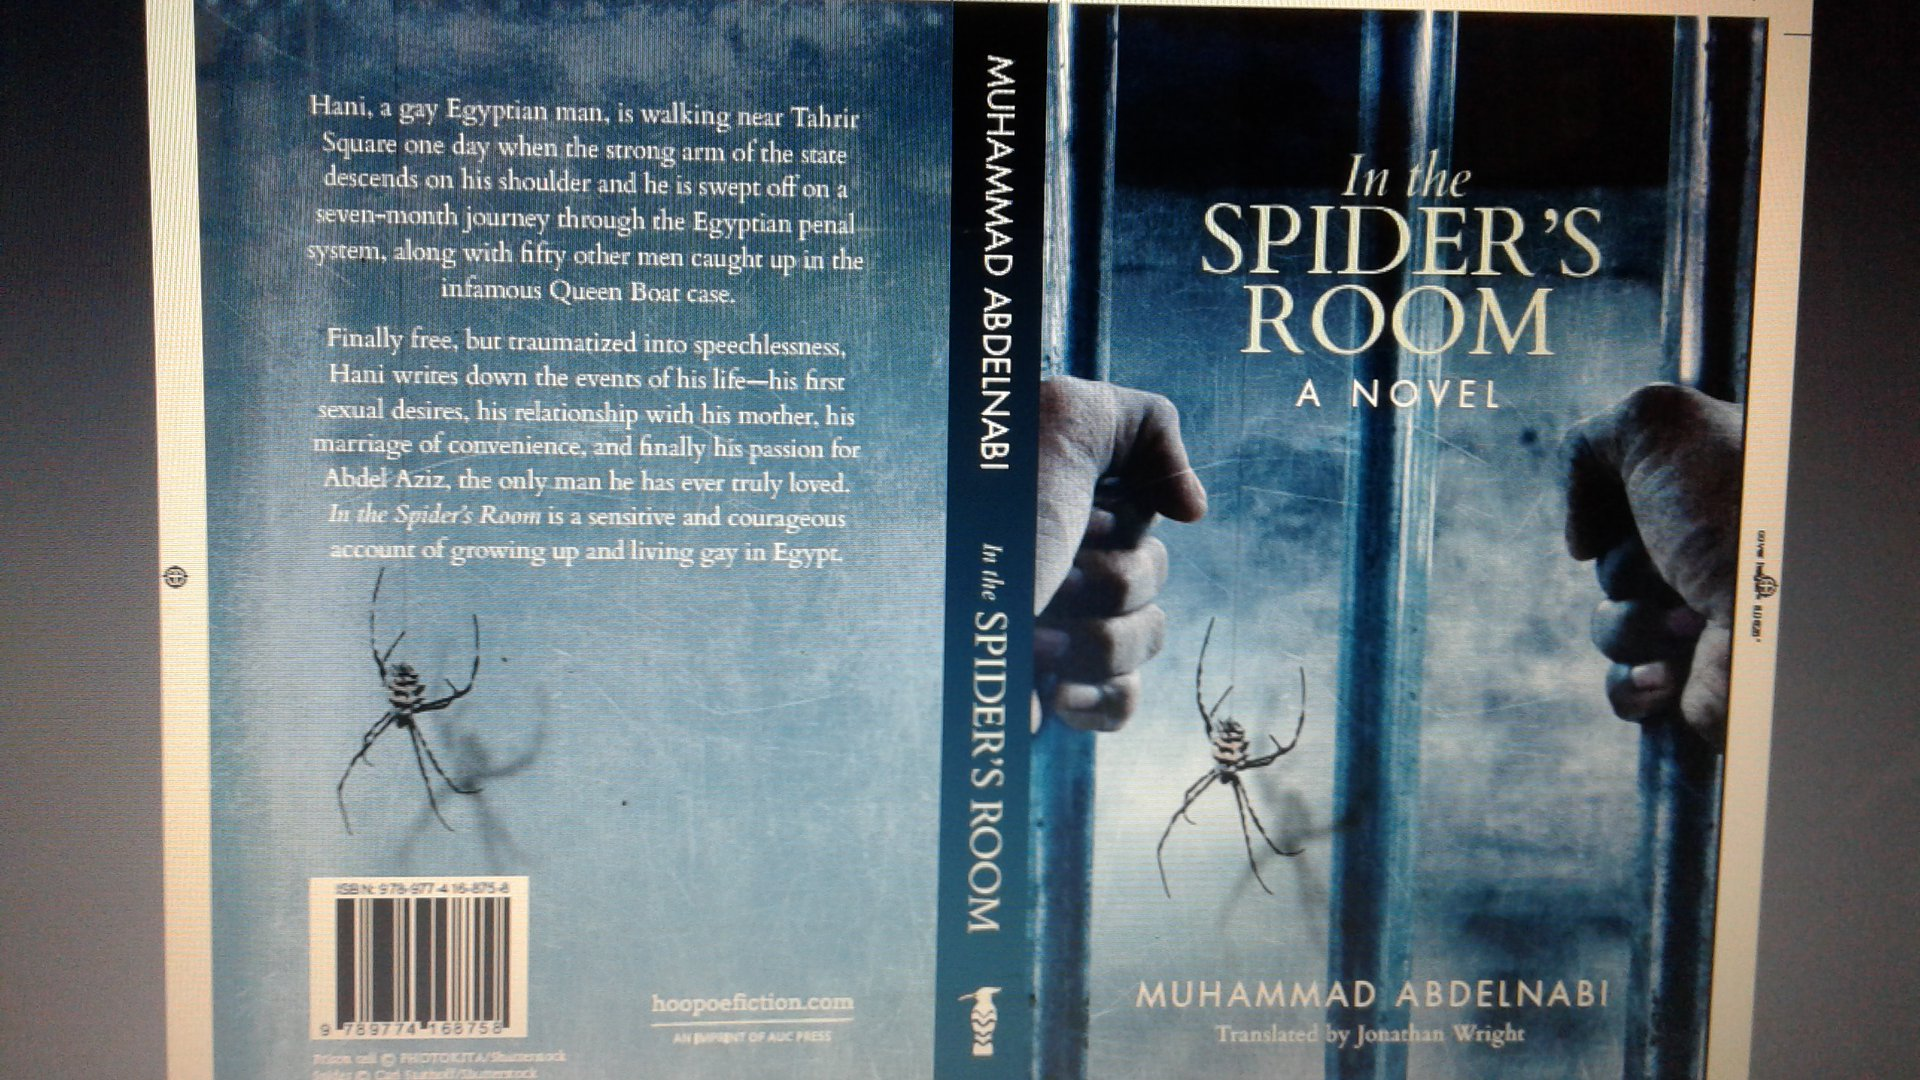 Cover Reveal for Muhammad Abdelnabi's 'In the Spider's Room,' tr. Jonathan Wright